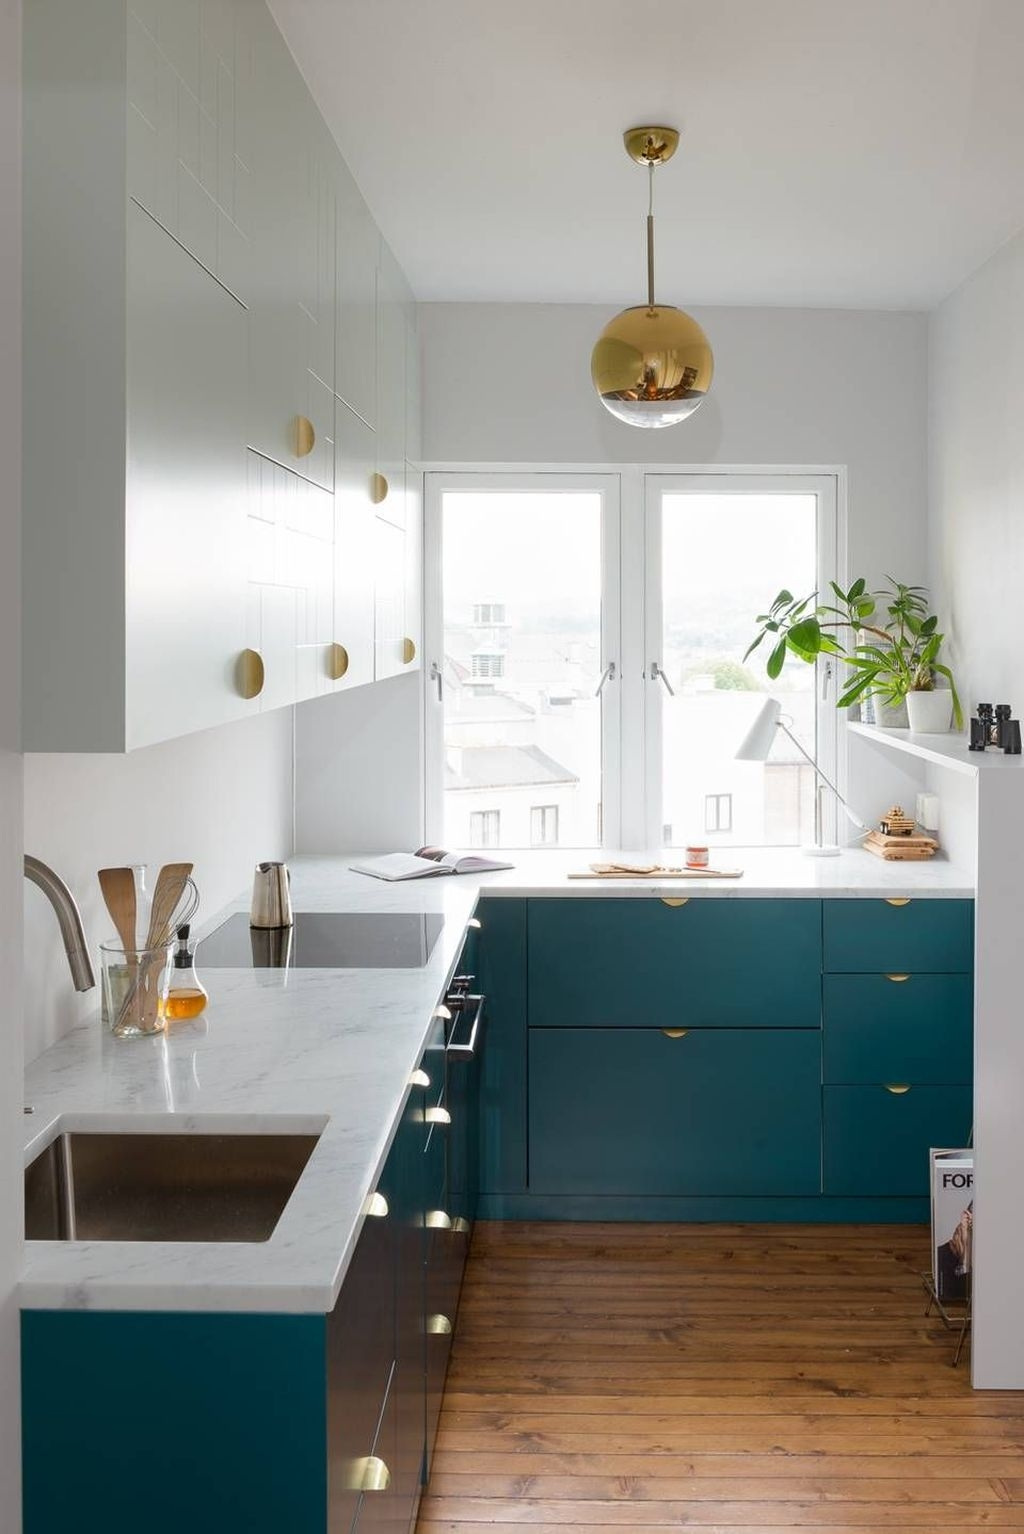 Totally Inspiring Small Kitchen Design Ideas For Your Small Home 31